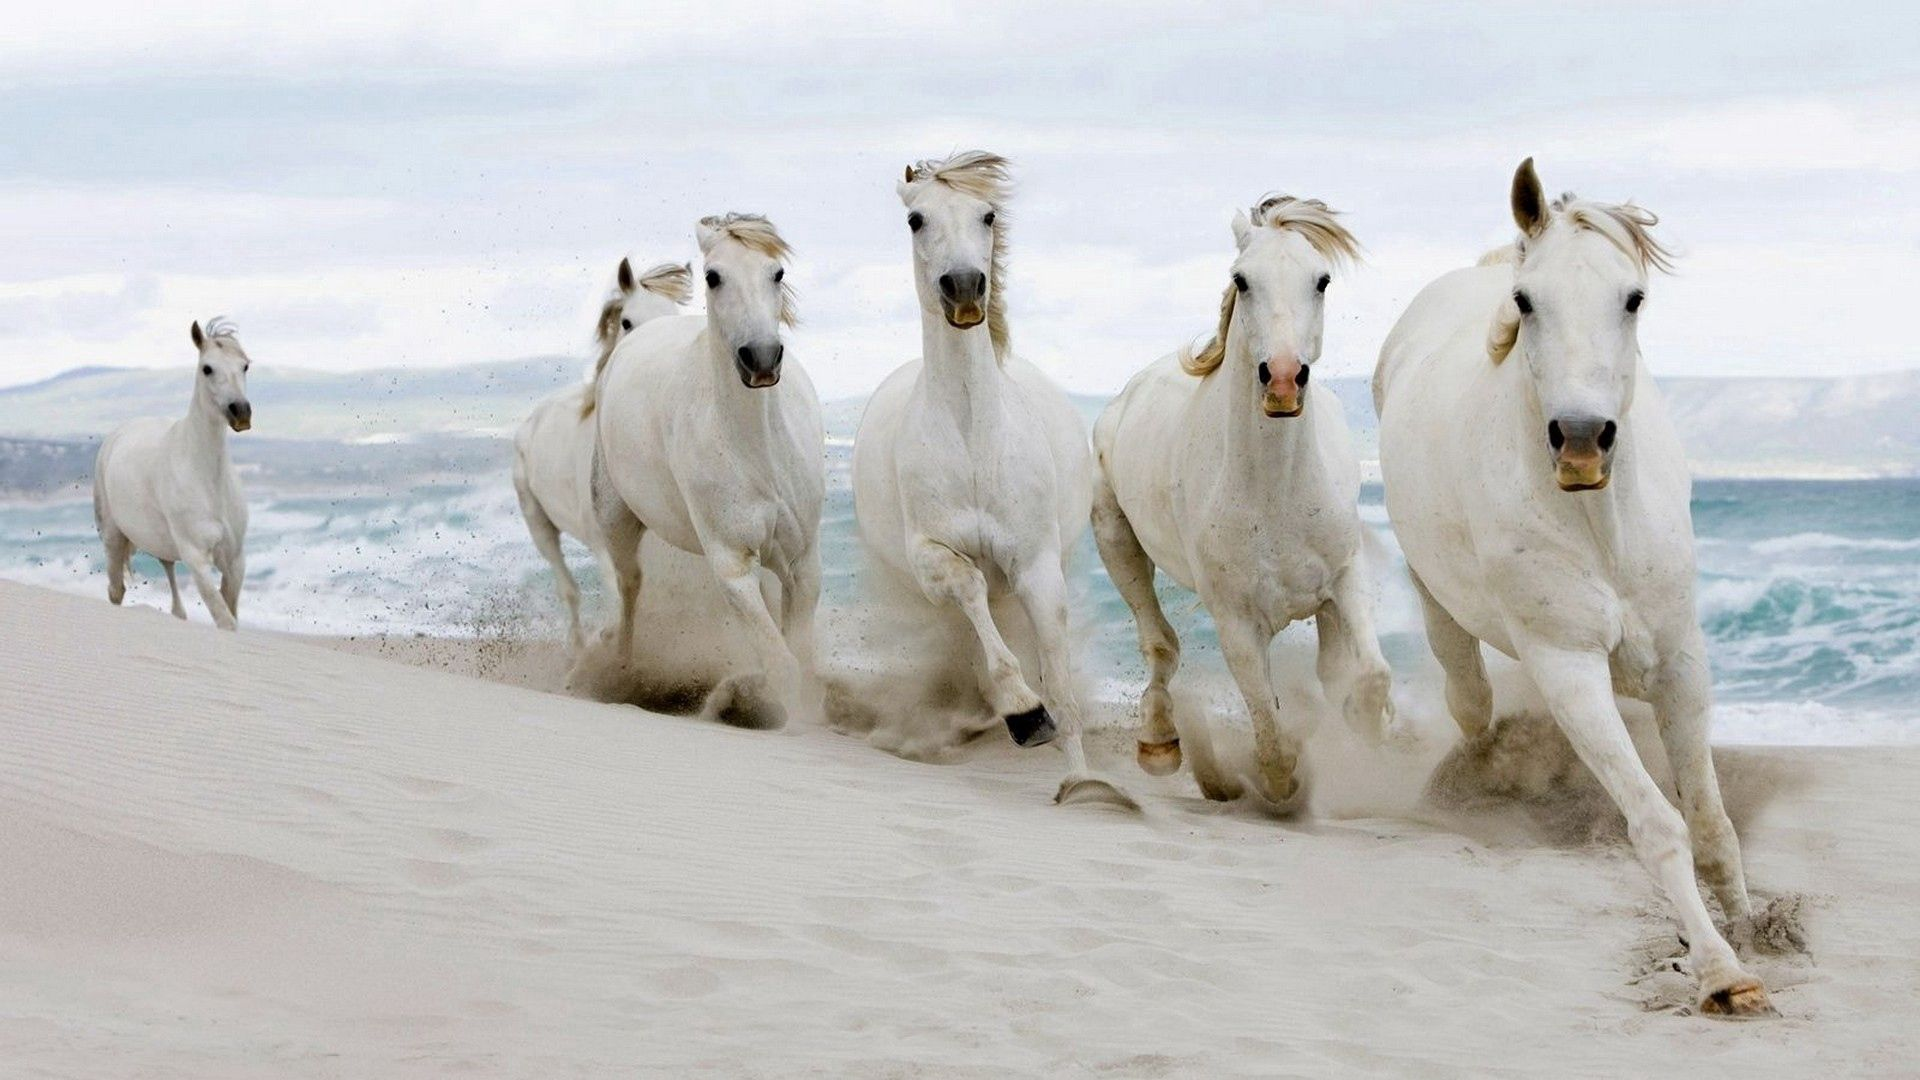 59812 download wallpaper Animals, Horses, Sea, Sand, Herd, Run Away, Run screensavers and pictures for free